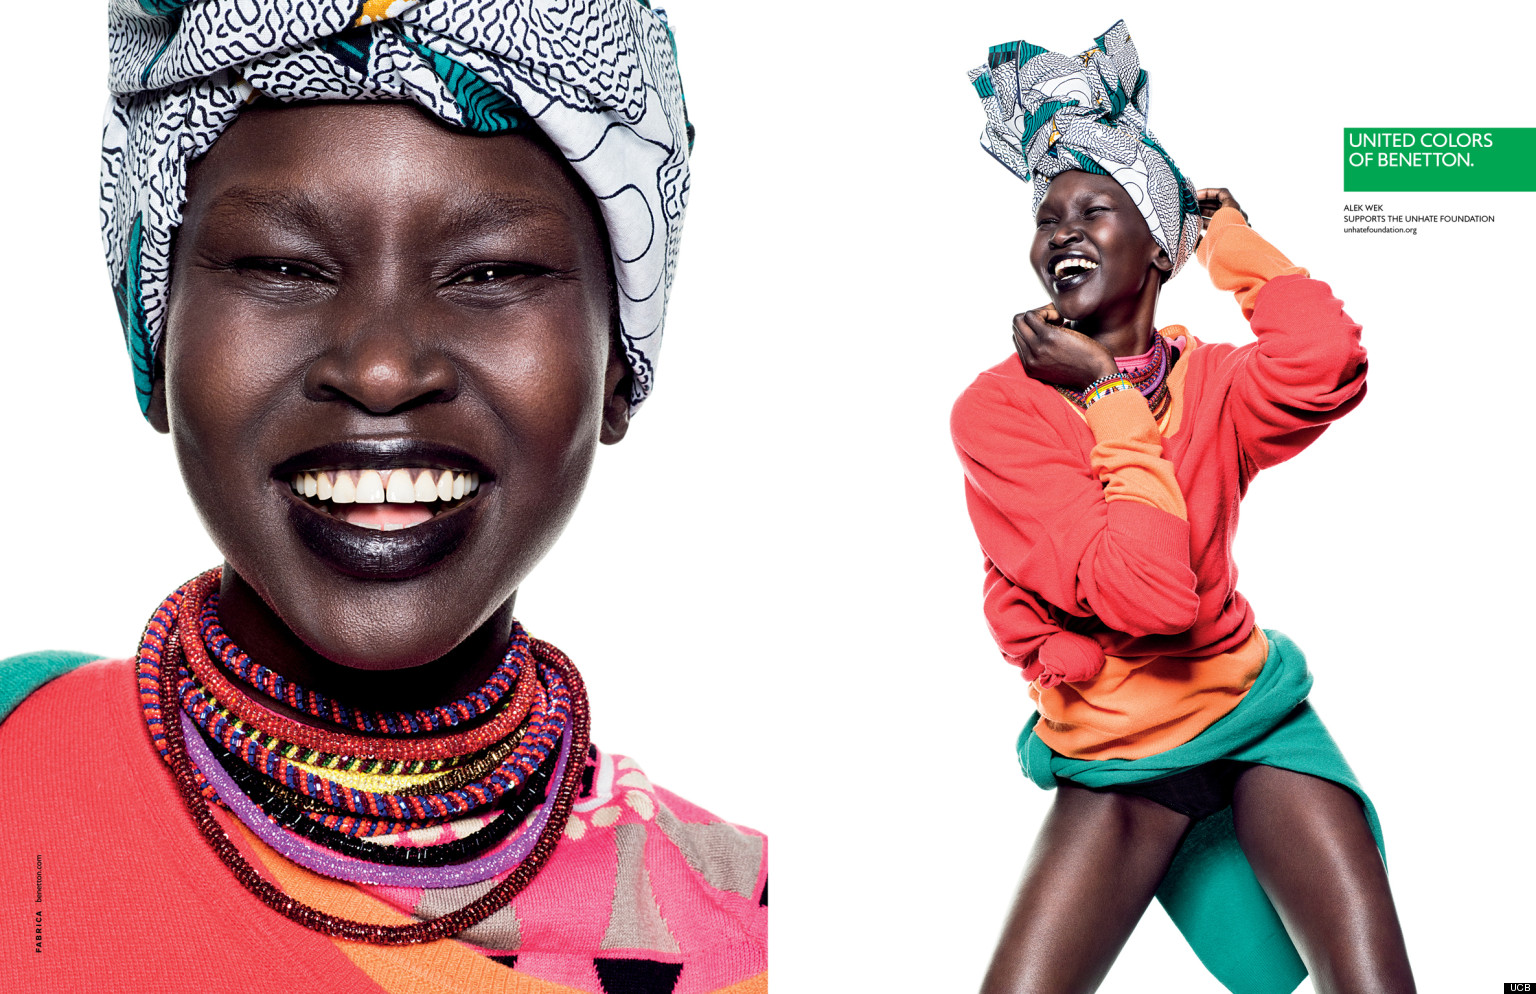 United colors of benetton spring 2013 campaign alek wek for United colors of benetton usa